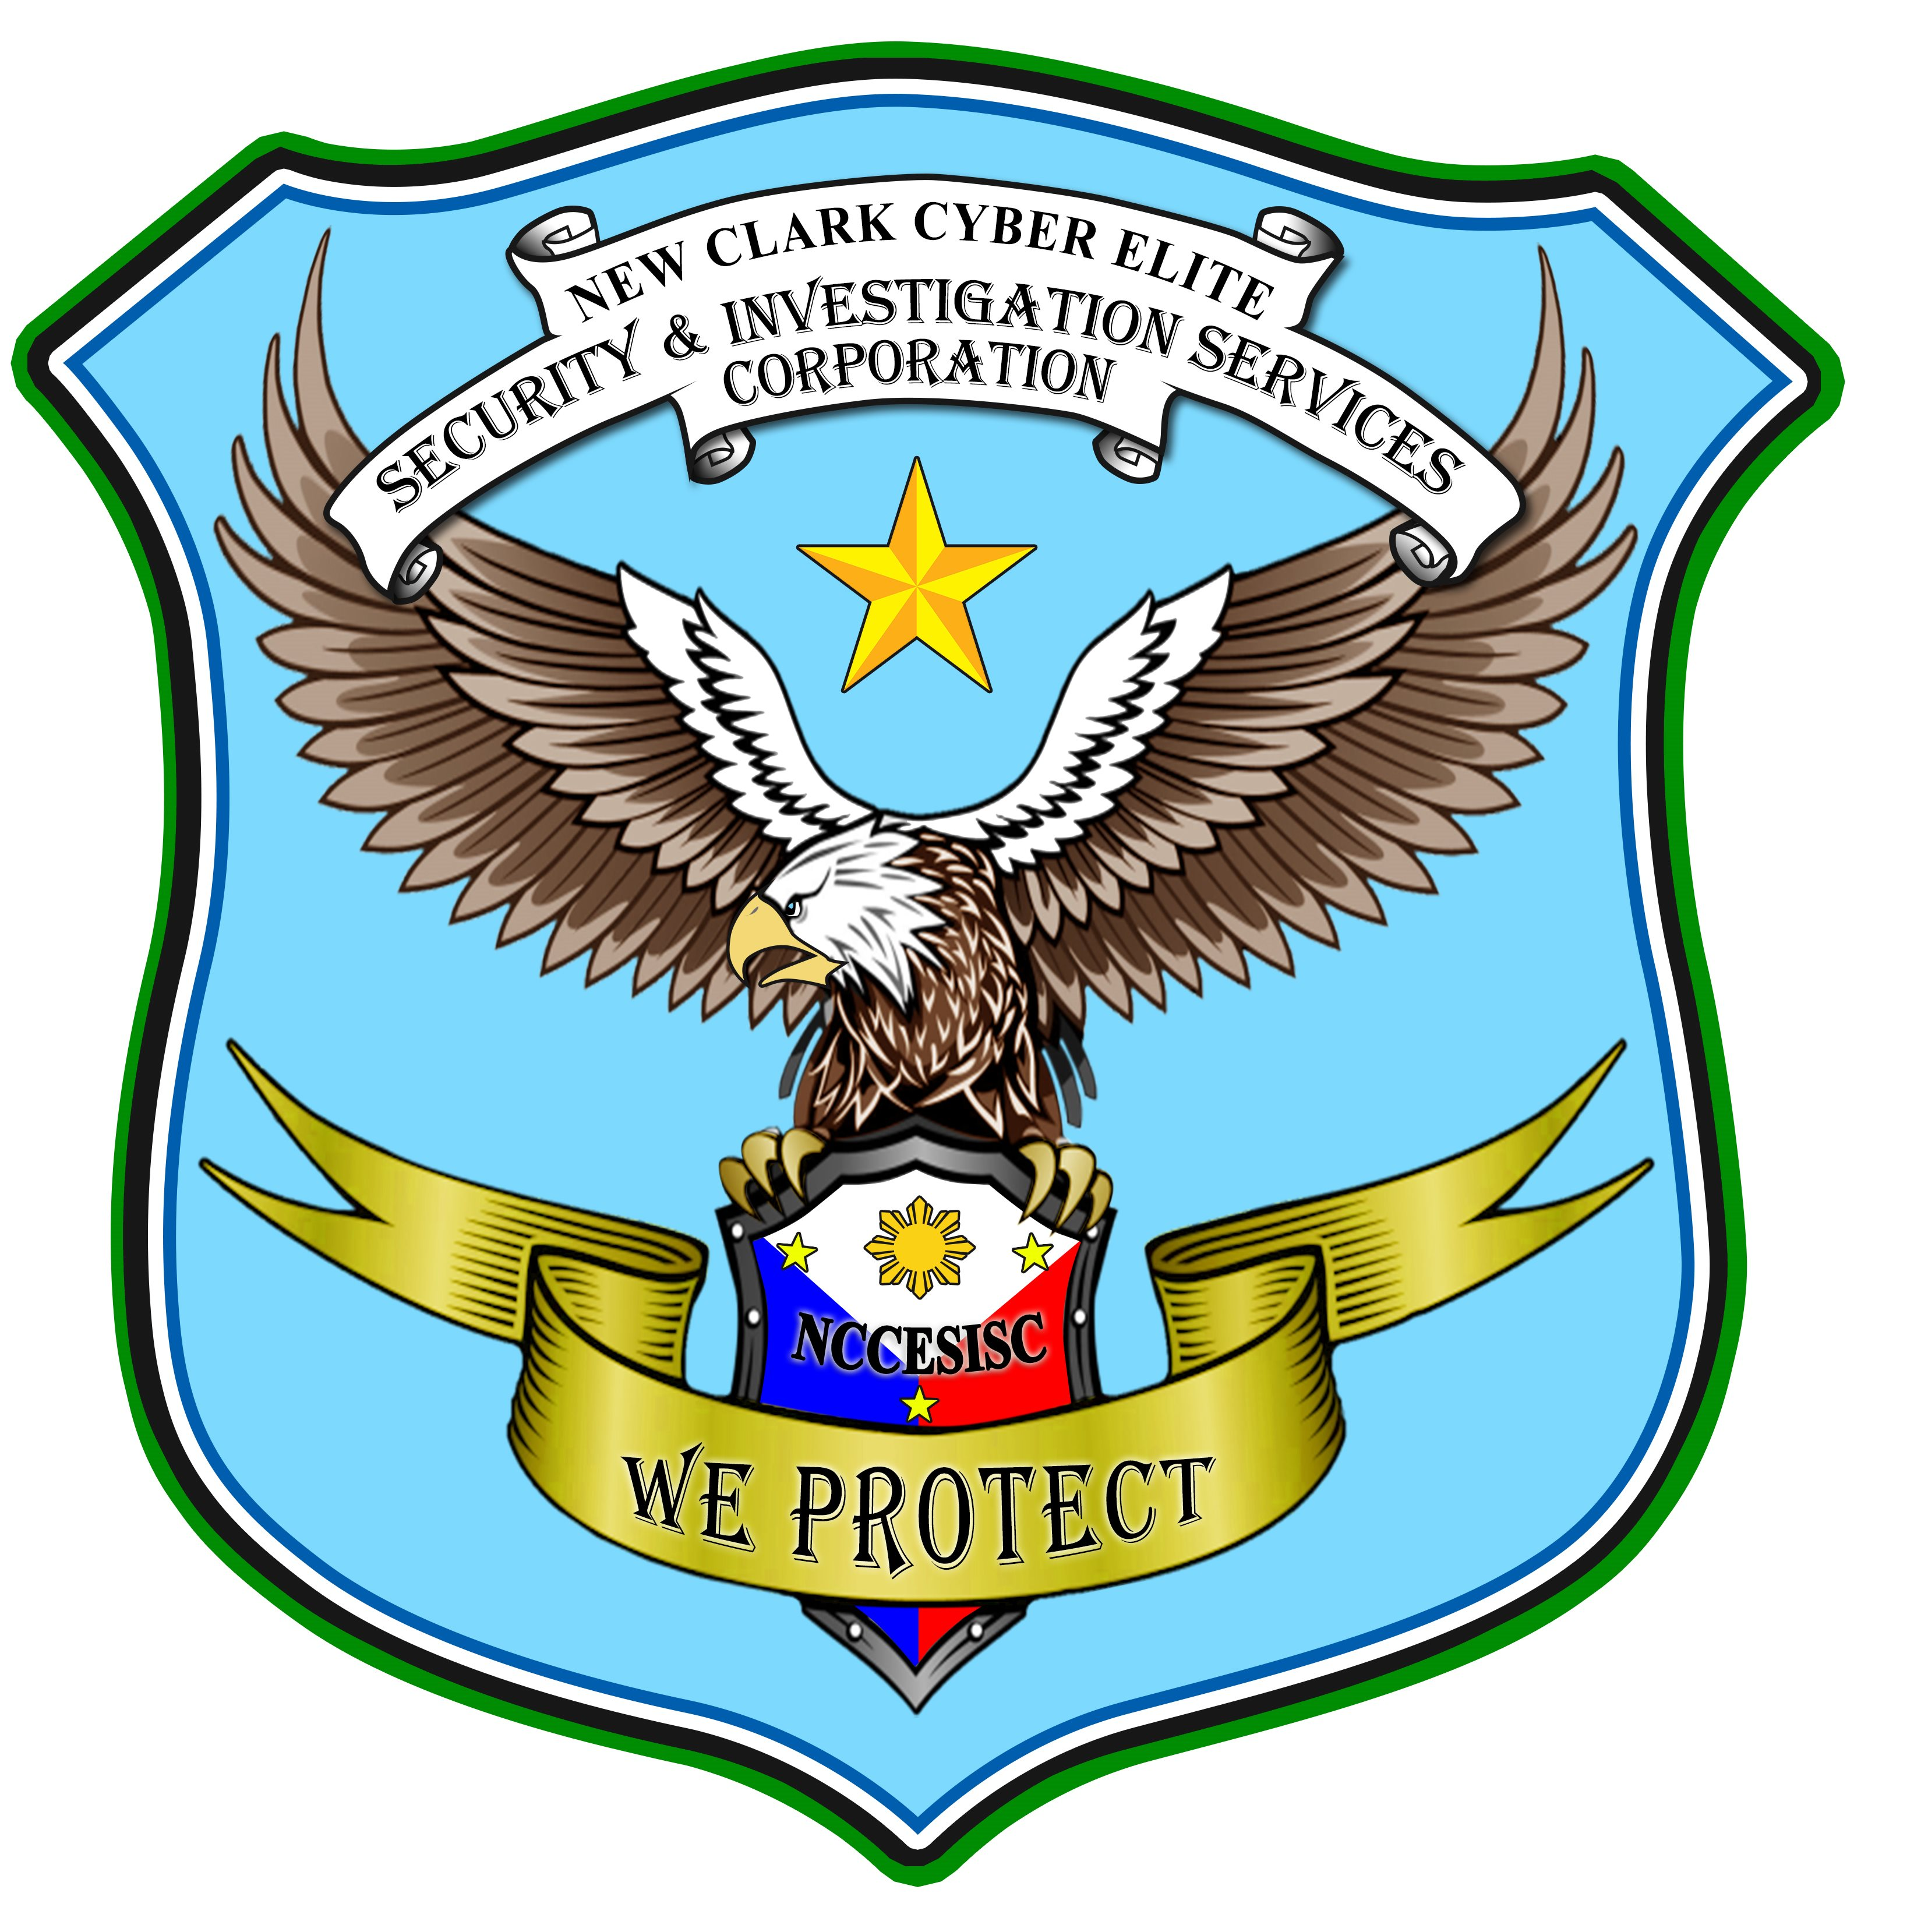 New Clark Cyber Elite Security and Investigation Services Corp.